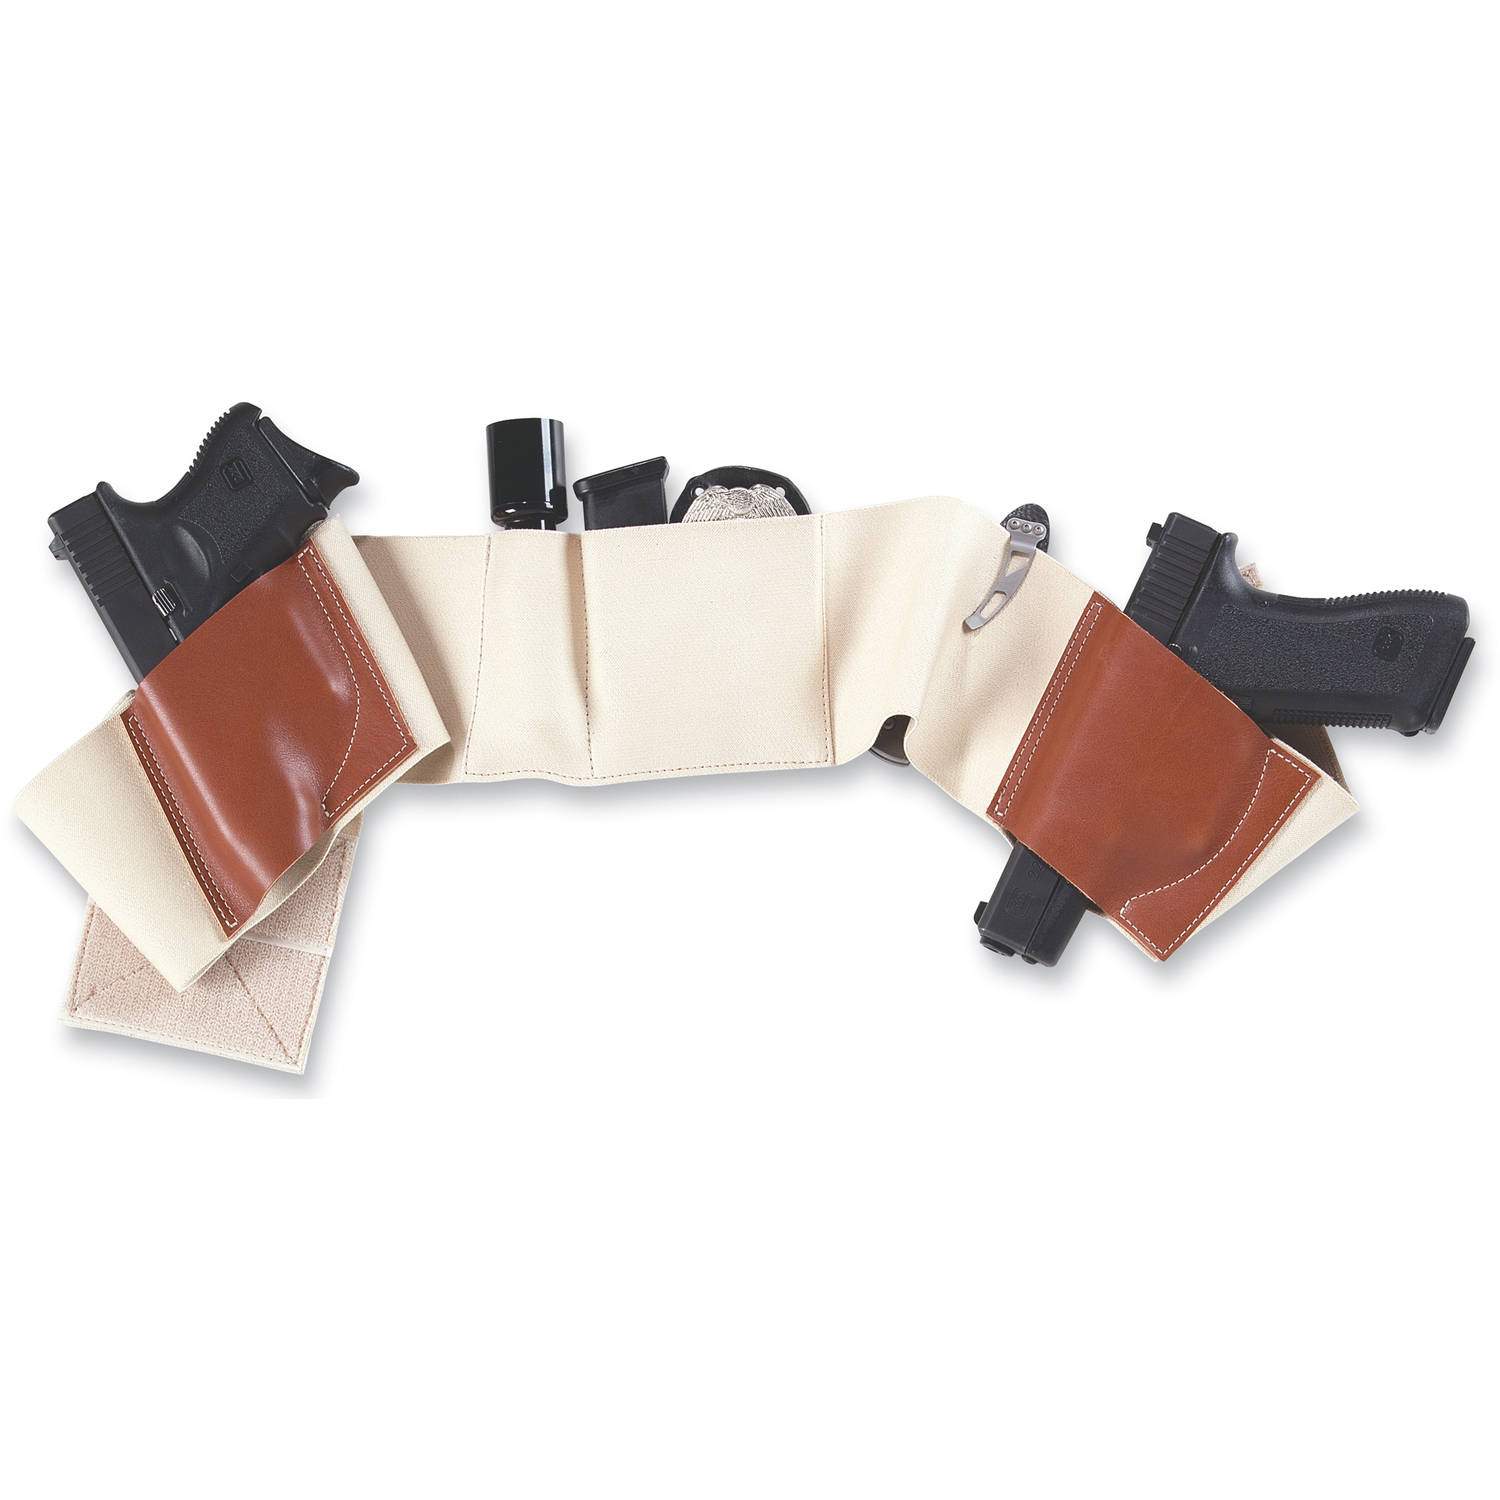 Galco Belly Band Underwraps Holster, Size Extra Large, Khaki by Galco